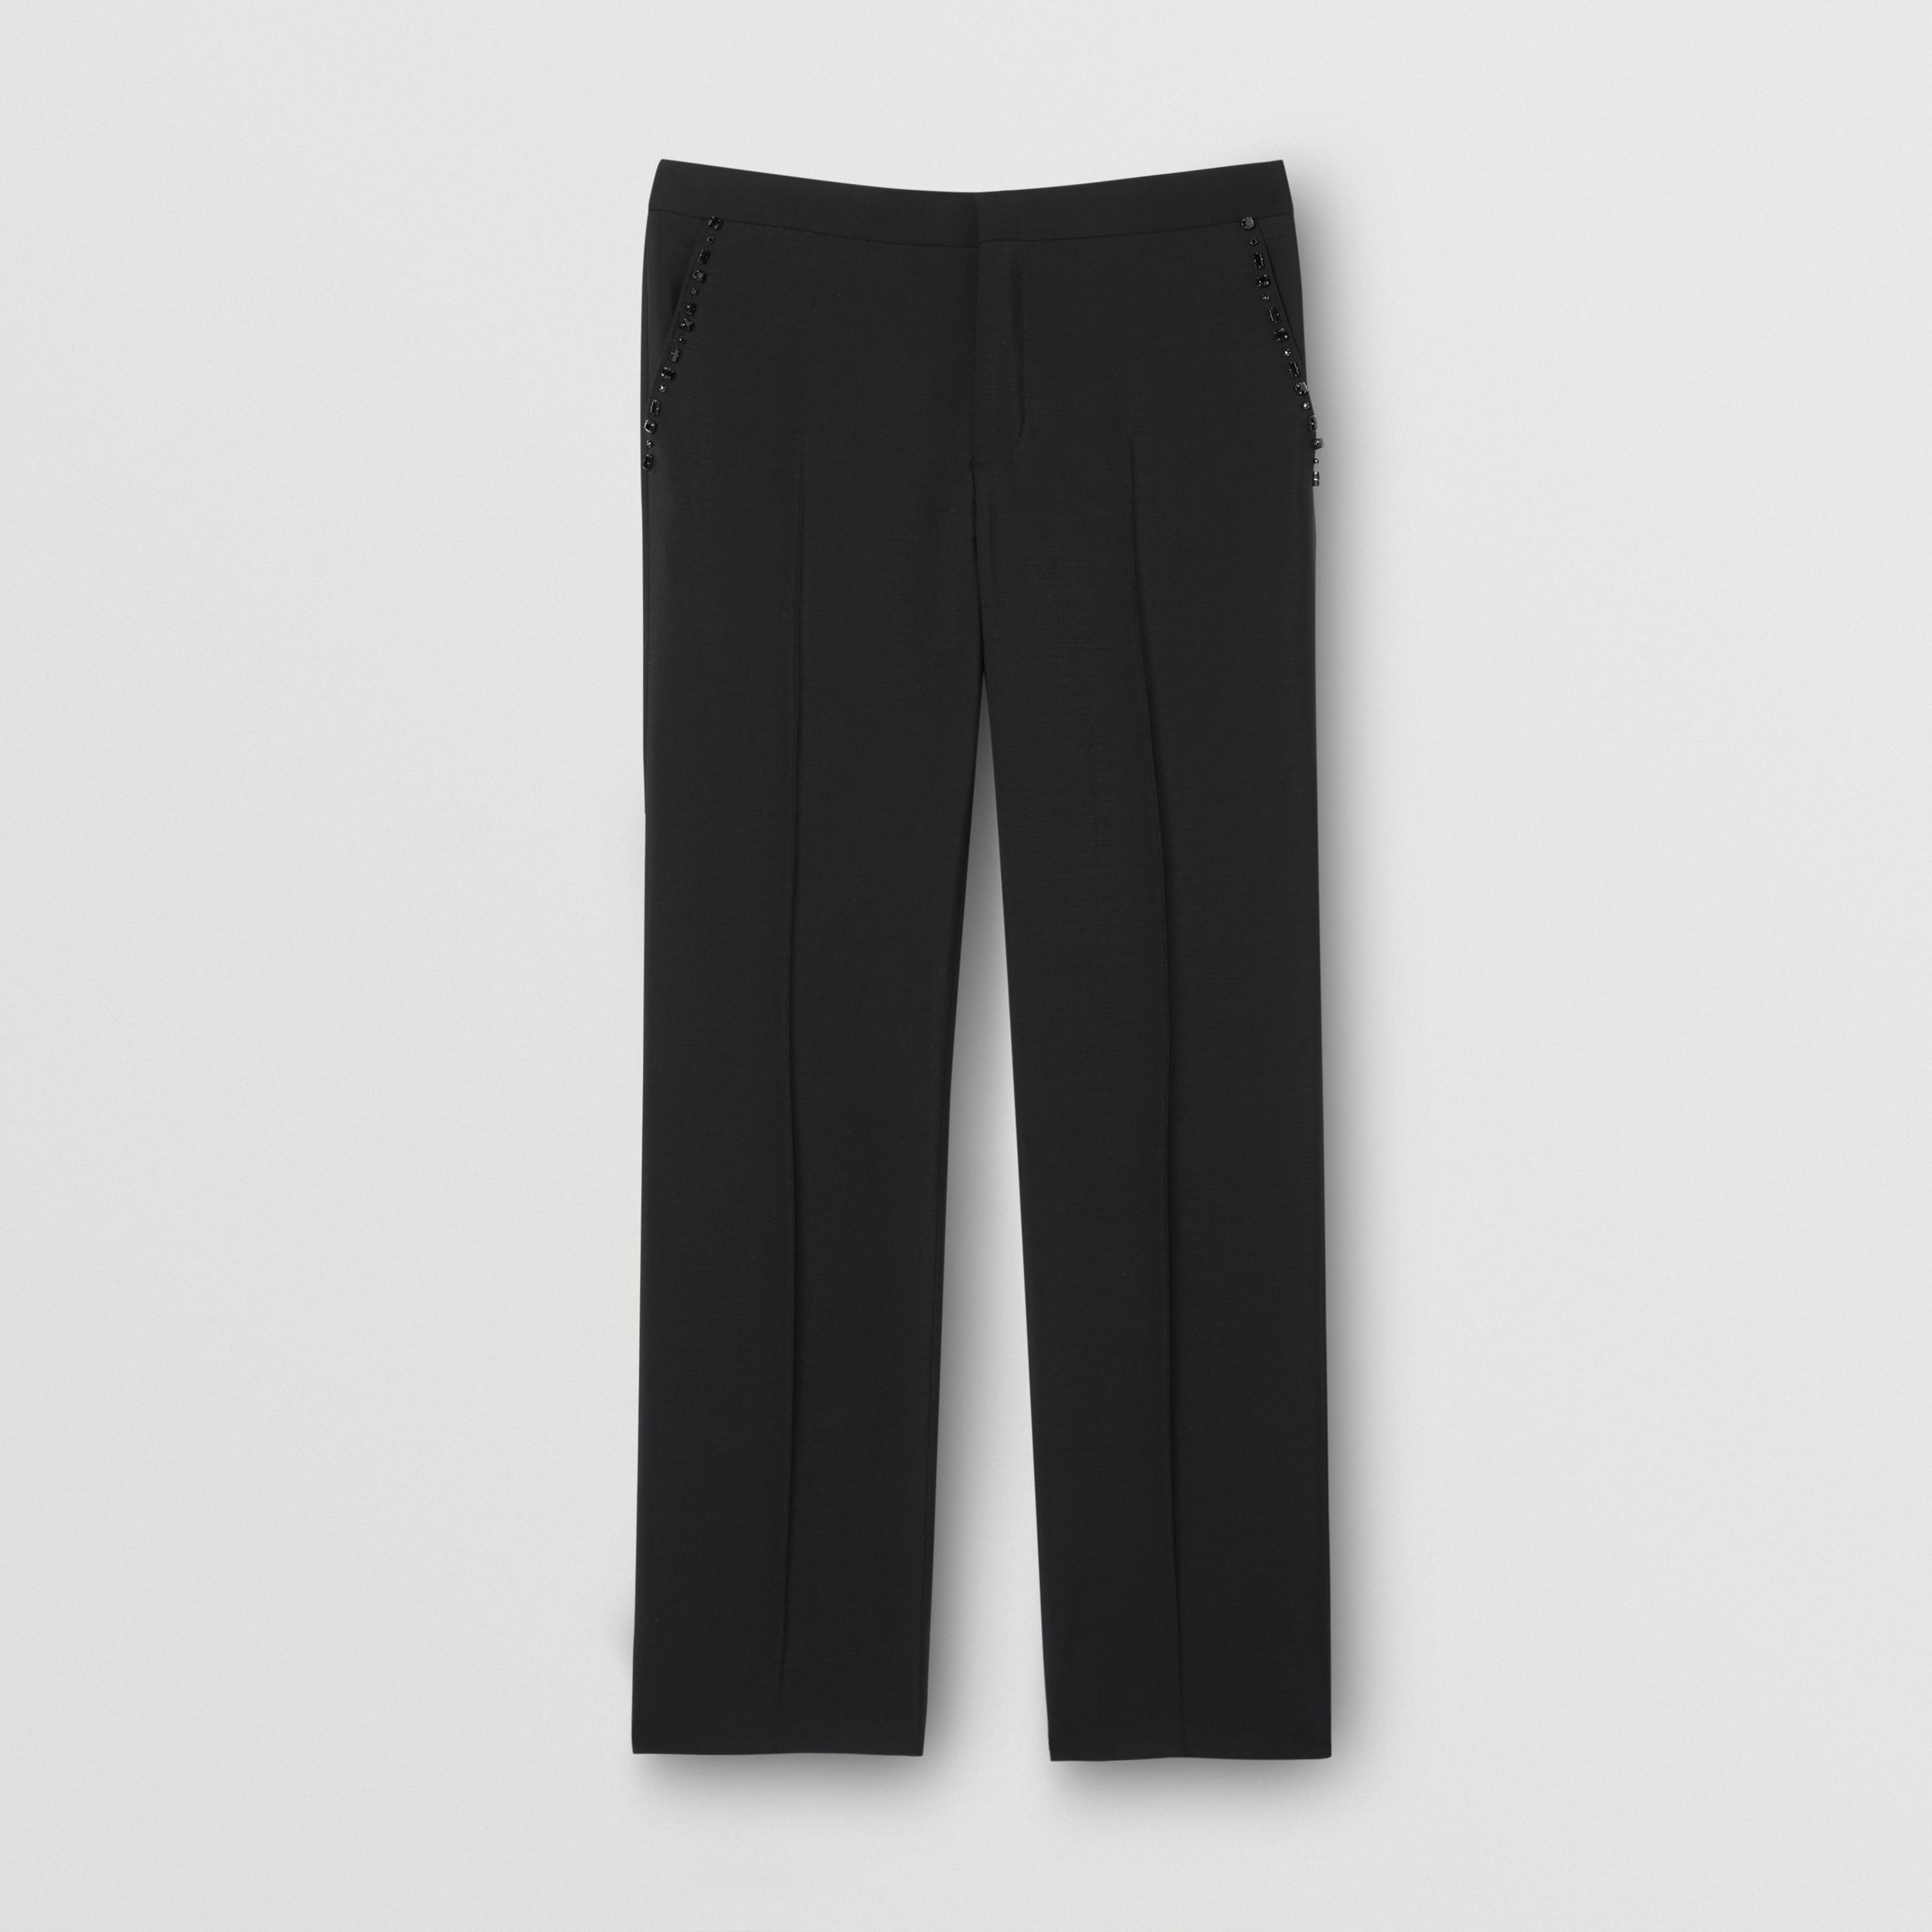 Classic Fit Embellished Mohair Wool Tailored Trousers in Black - Men | Burberry - 4